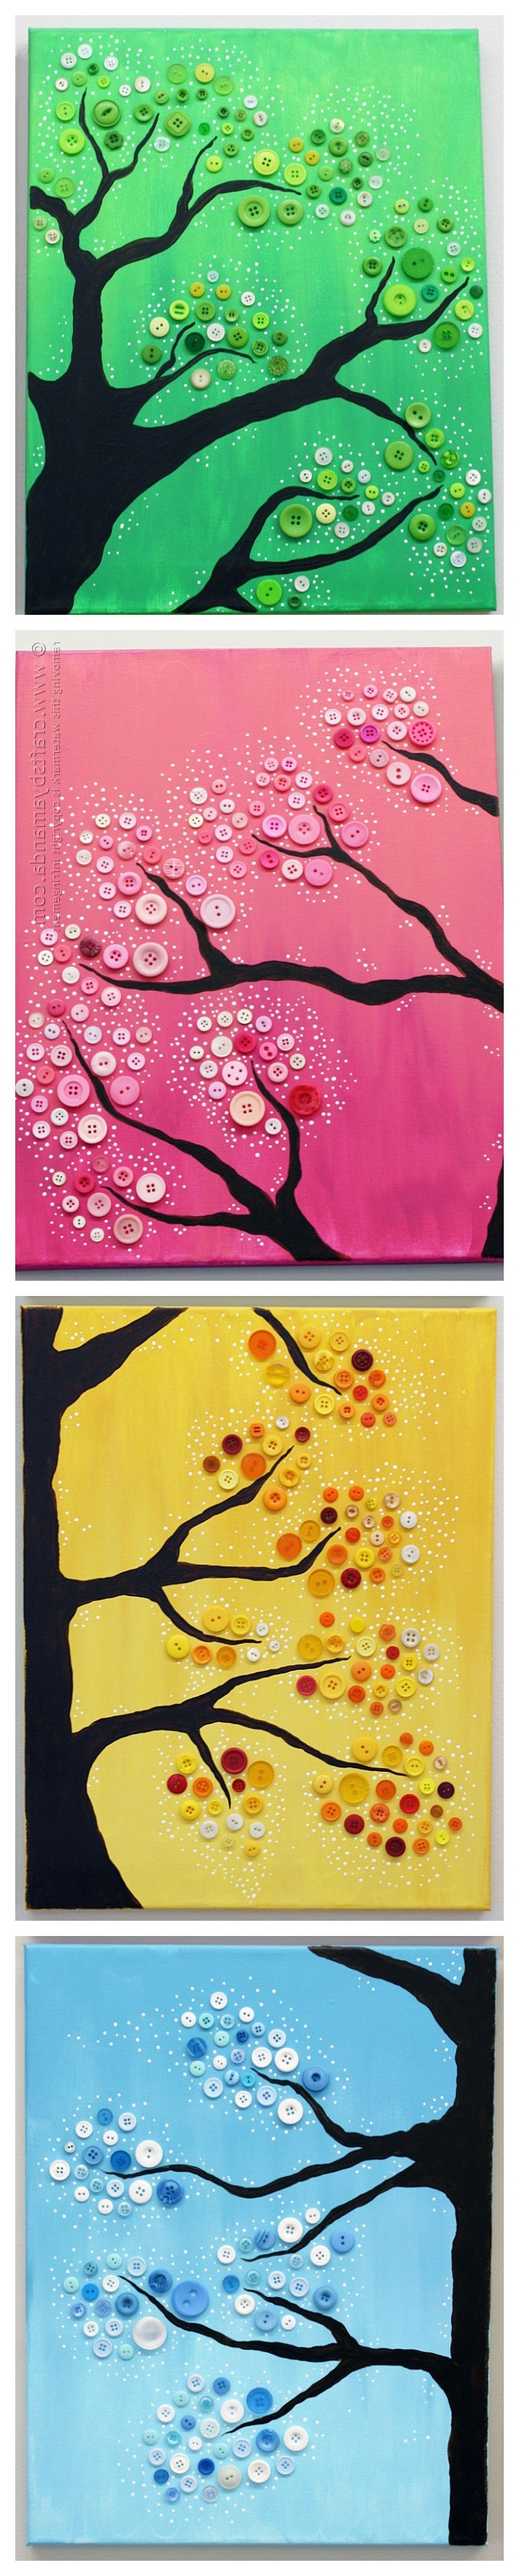 Most Recent Button Tree Wall Art: 4 Seasons, Colorful Button Tree With Regard To Seasonal Wall Art (View 8 of 15)